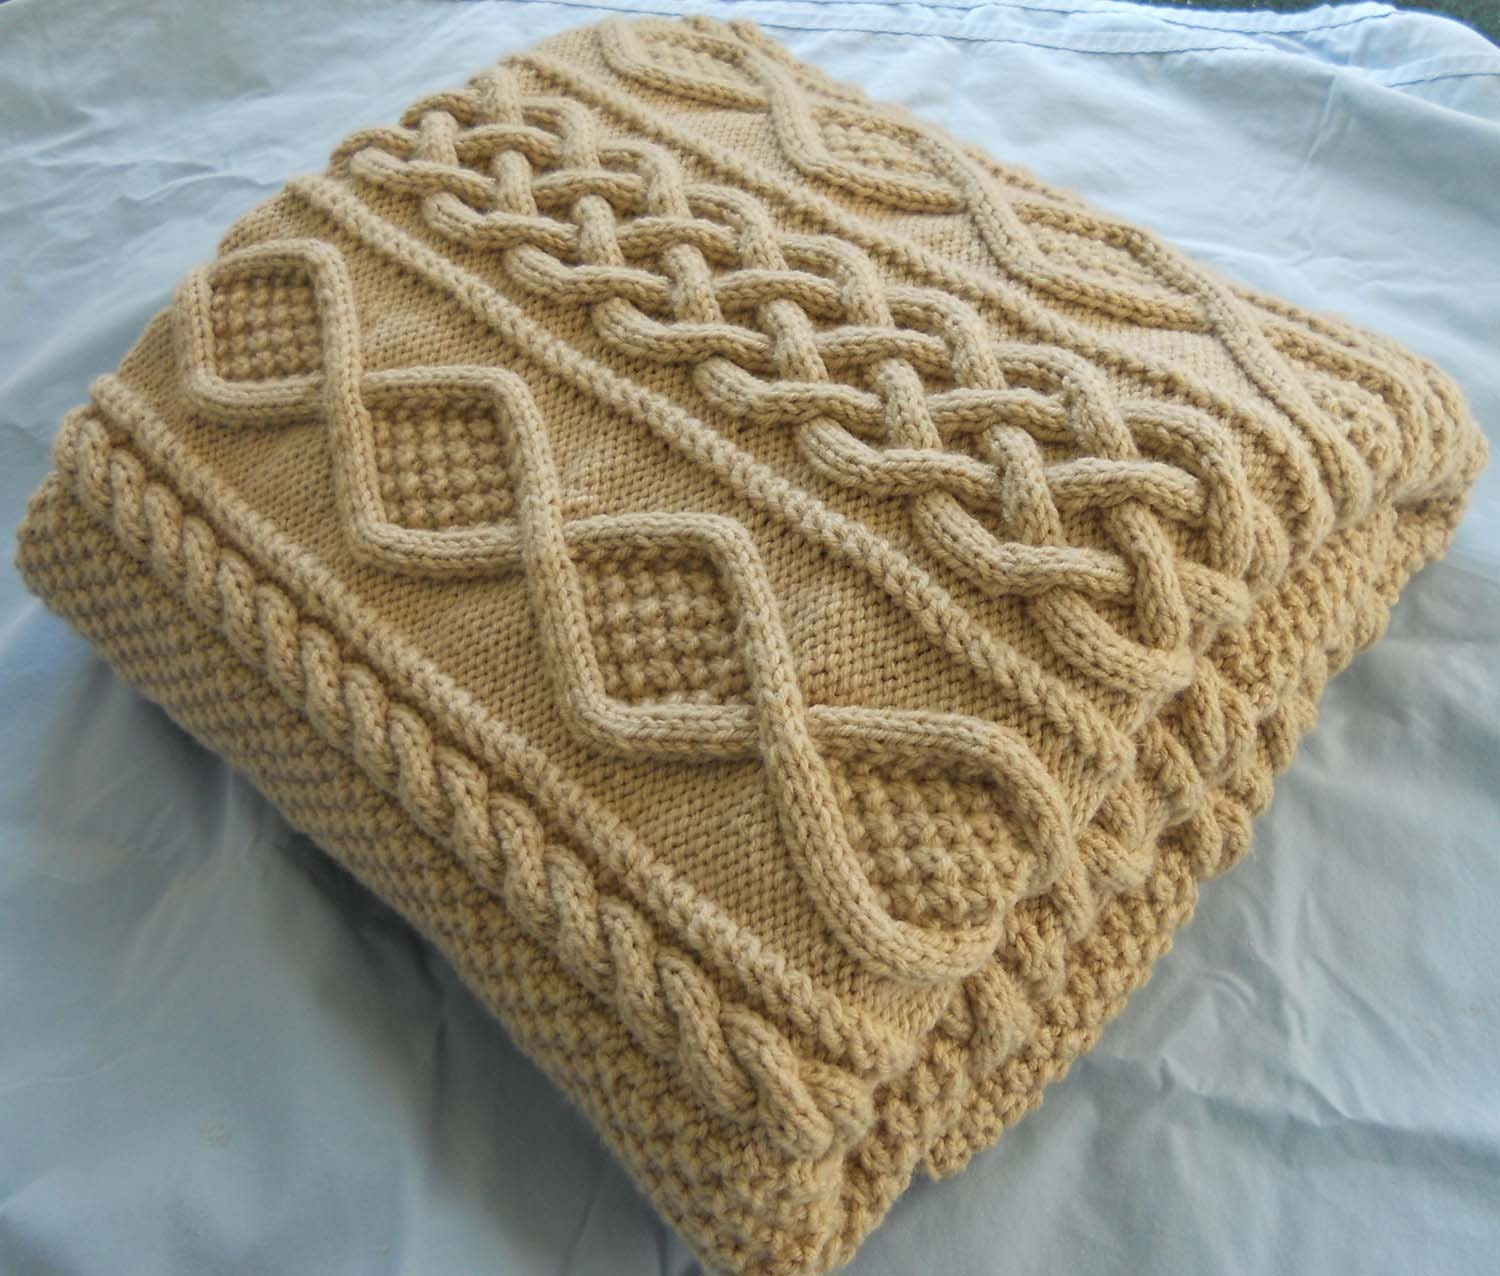 Hand Knitting Blankets : Lace hand knit blanket